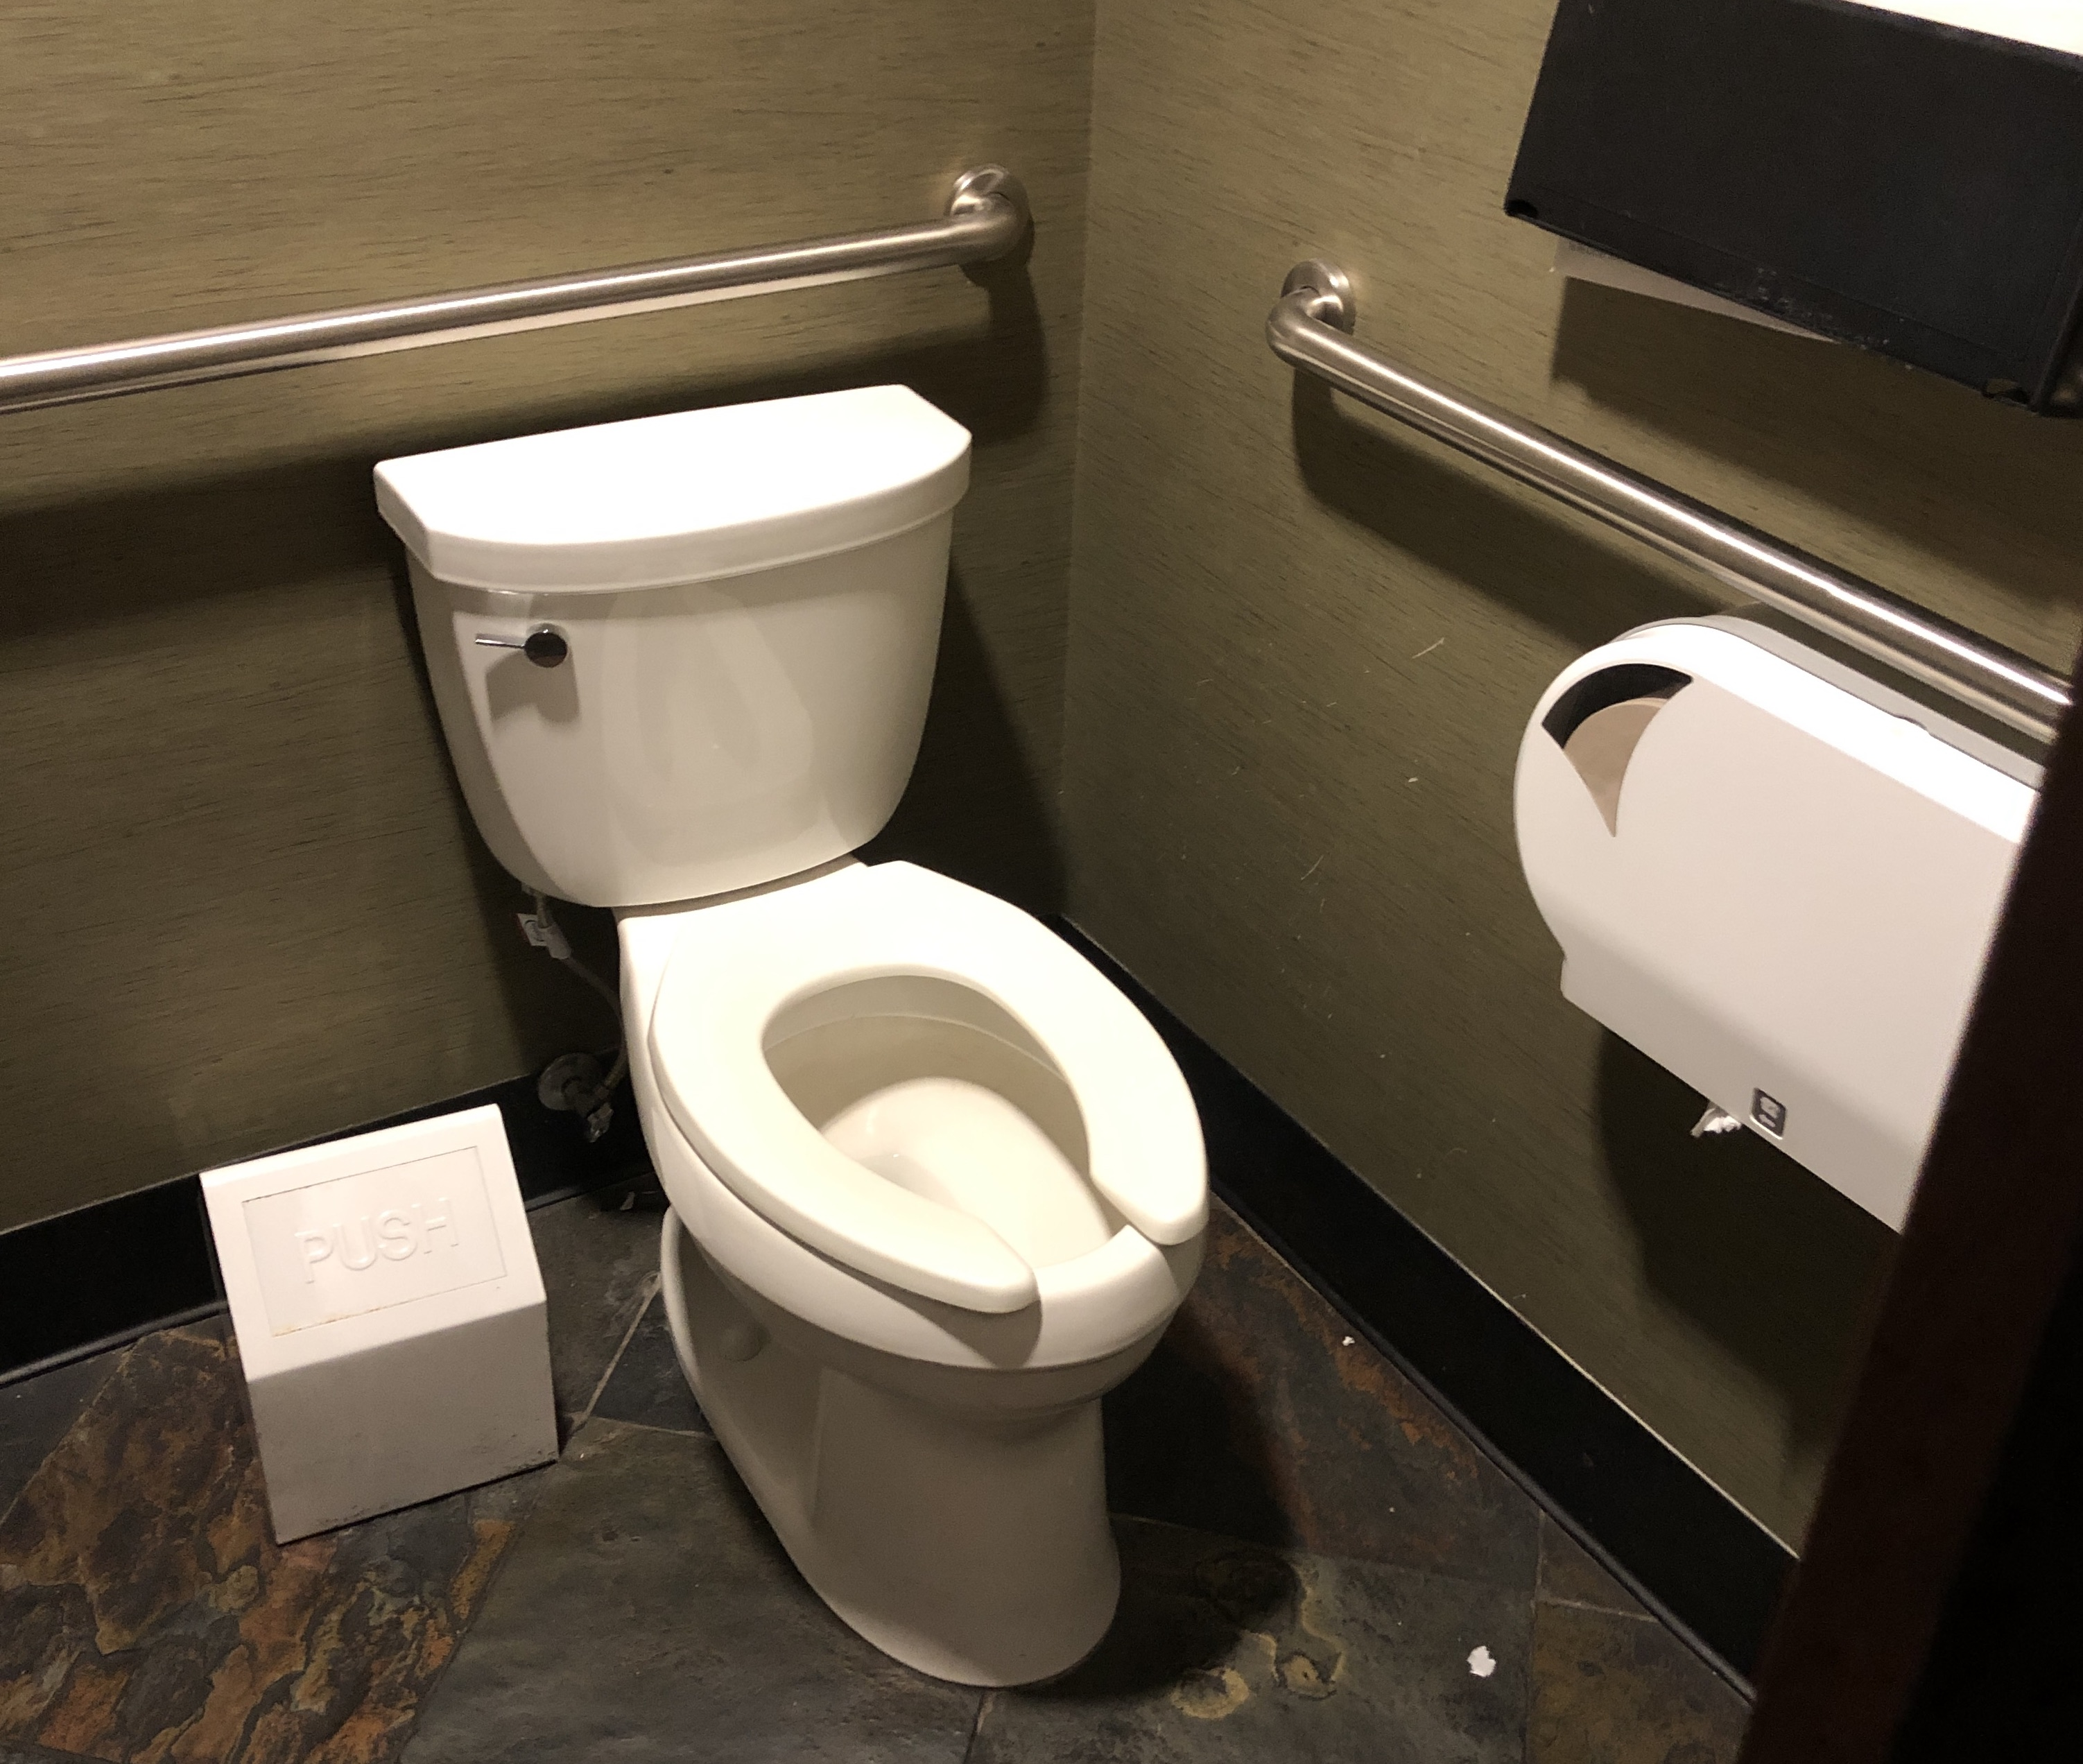 Women's accessible toilet